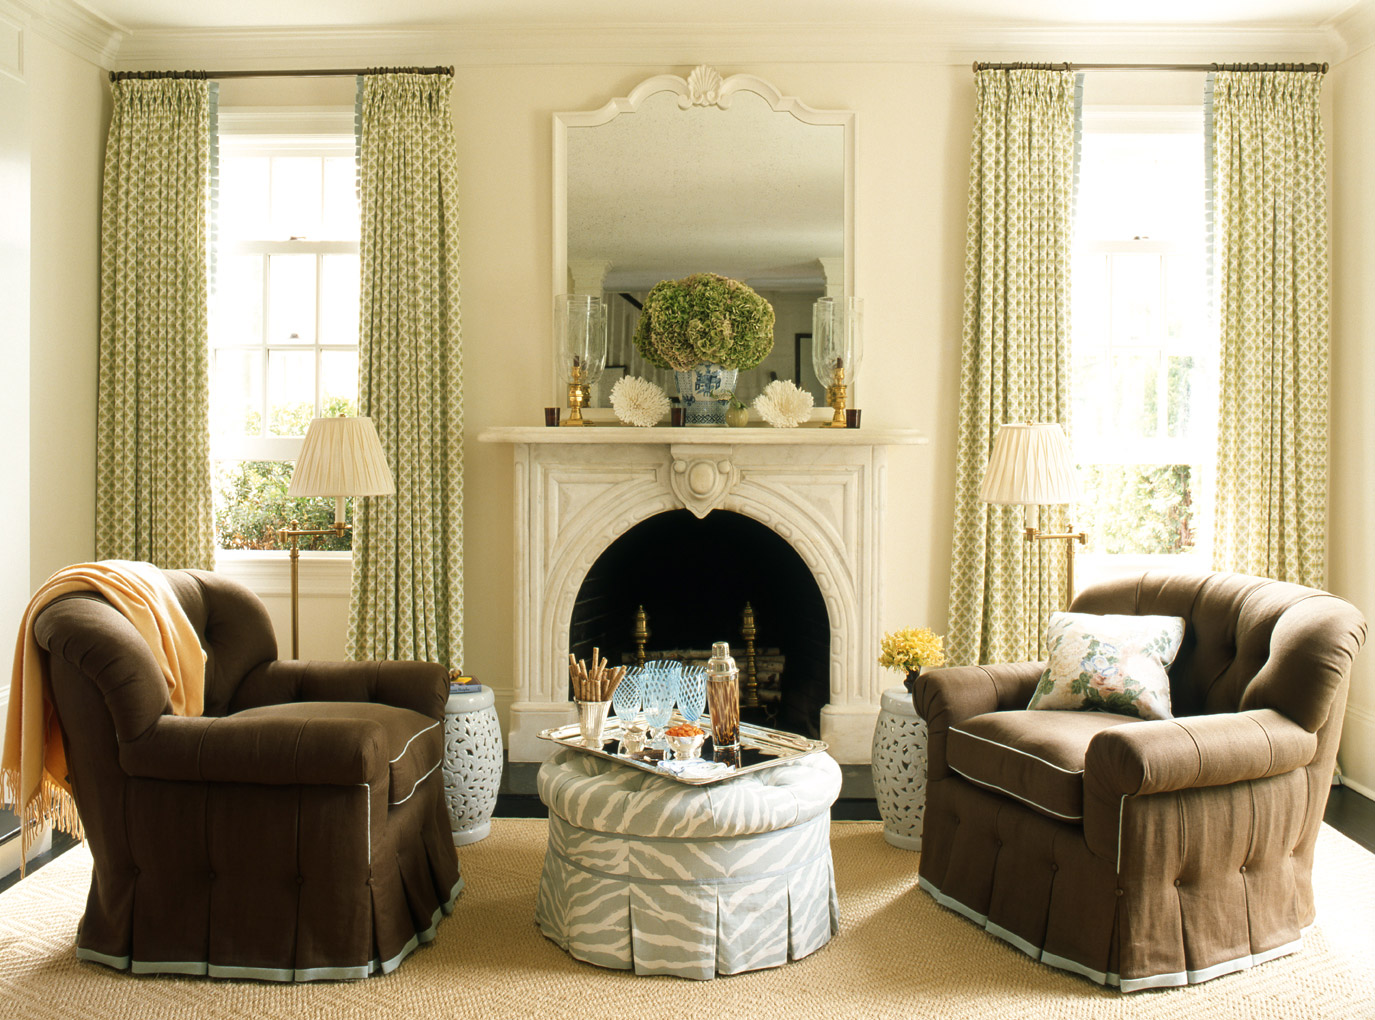 How to decorate series finding your decorating style for Classic american decorating style